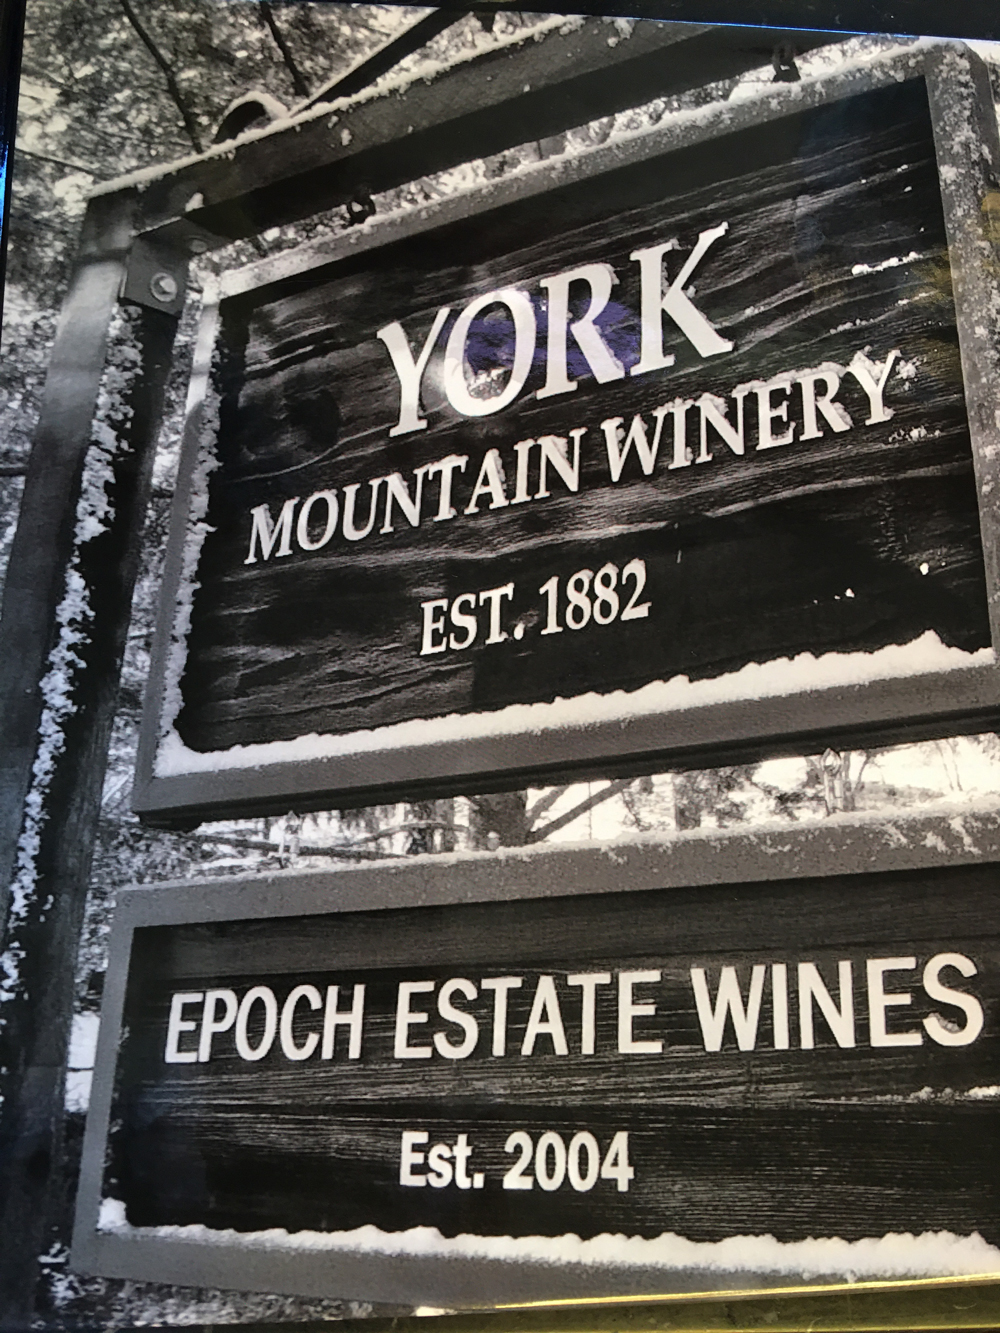 YORK MOUNTAIN WINERY Est. 1882 and EPOCH ESTATE WINES Est. 2004